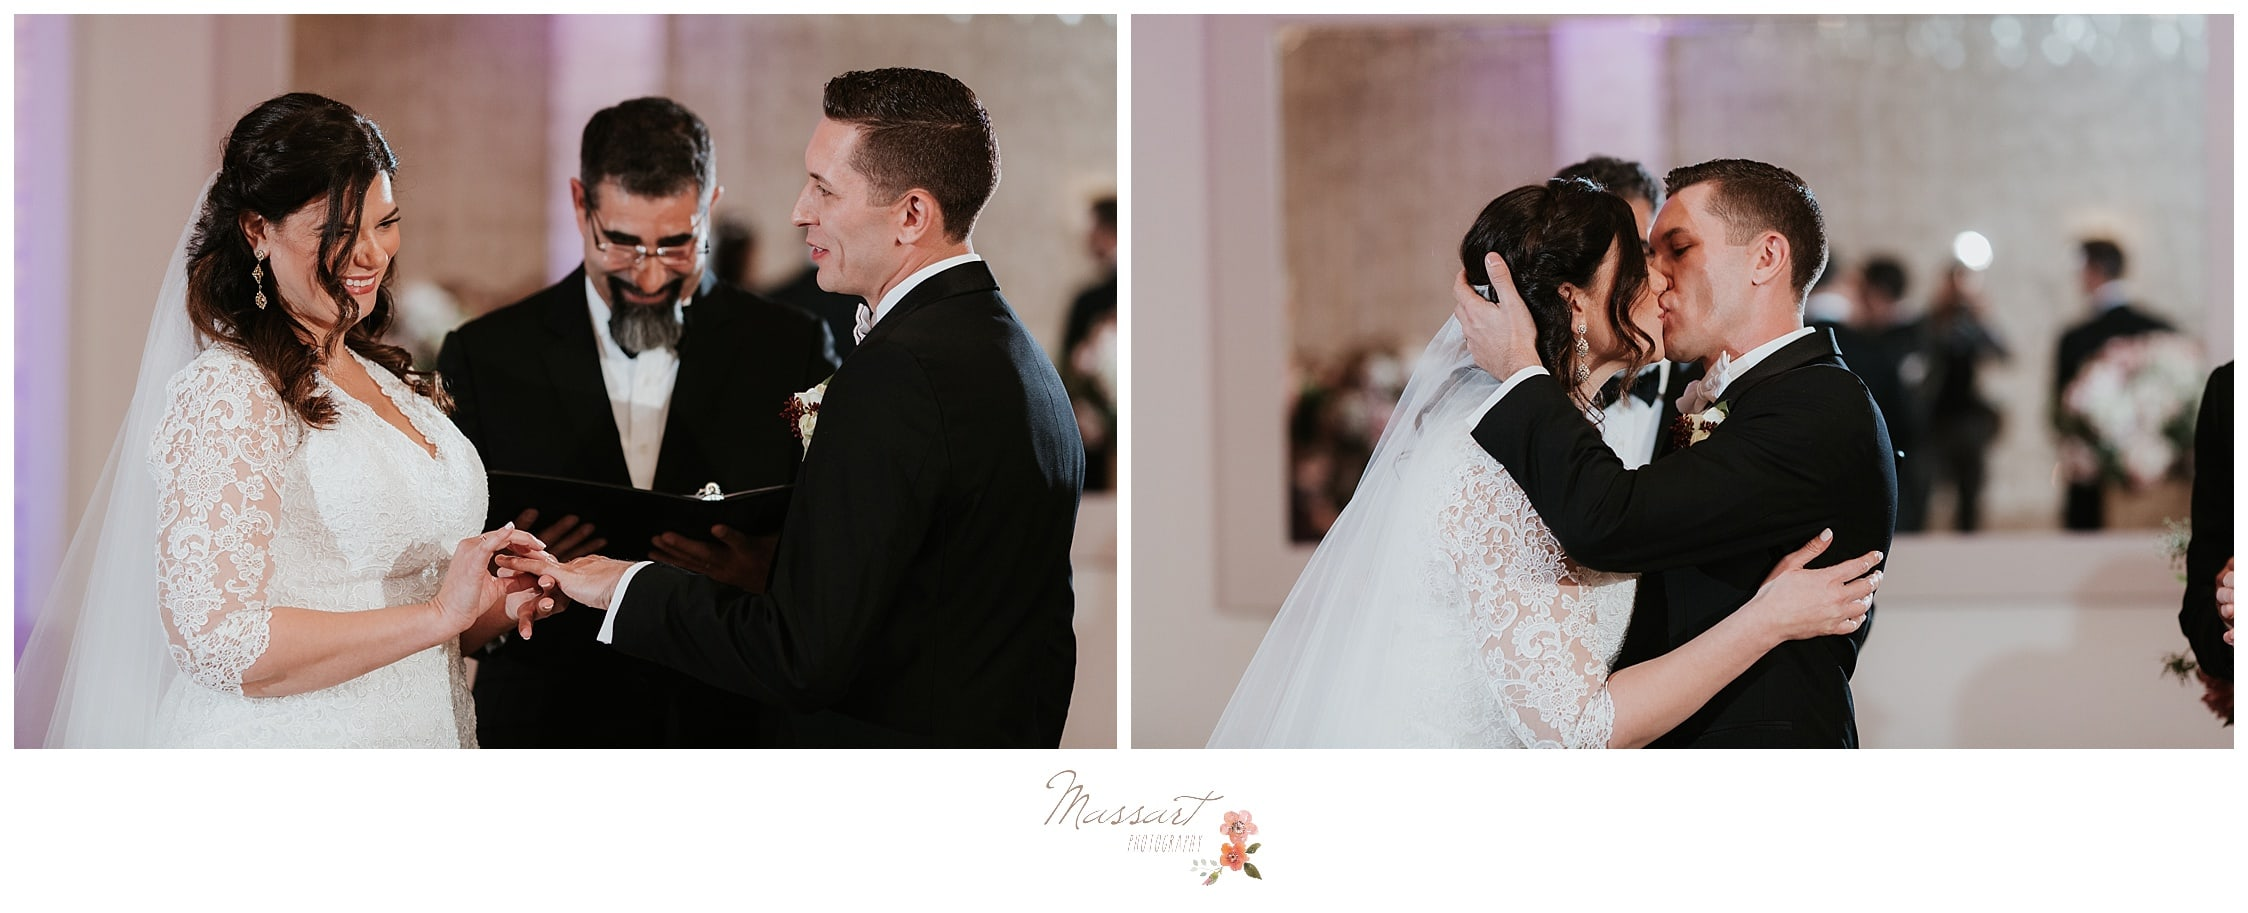 Couple exchange vows and rings at their wedding reception in Newport, RI